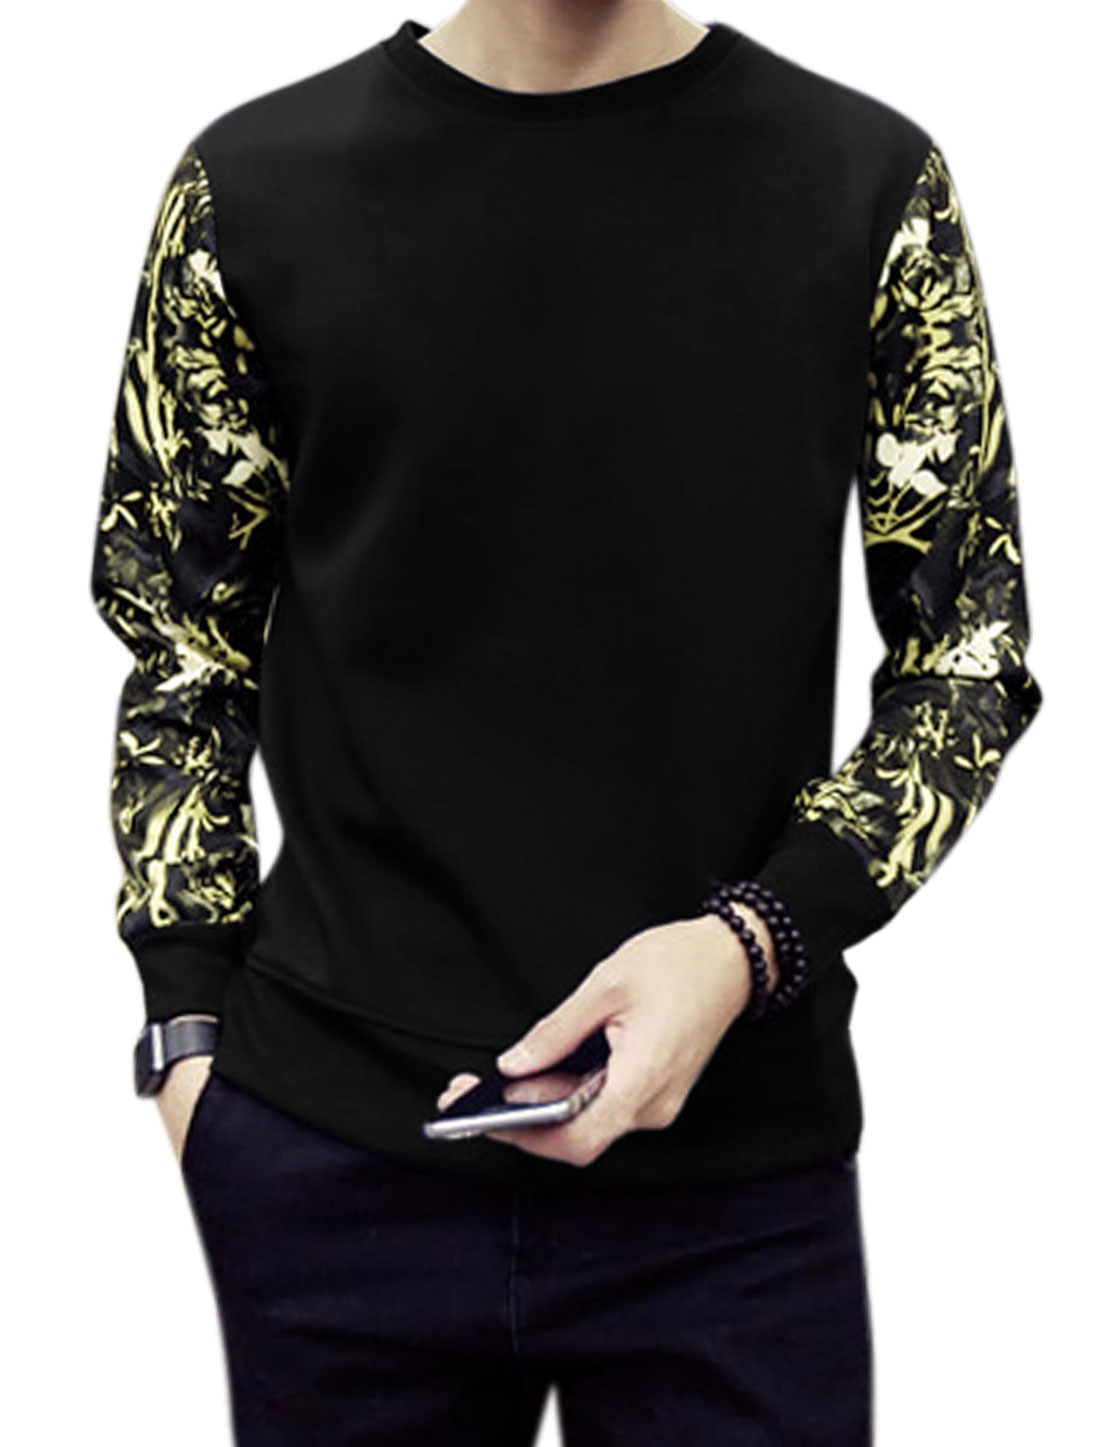 Men Long Sleeves Crew Neck Floral Prints Slim Fit Sweatshirt Black S